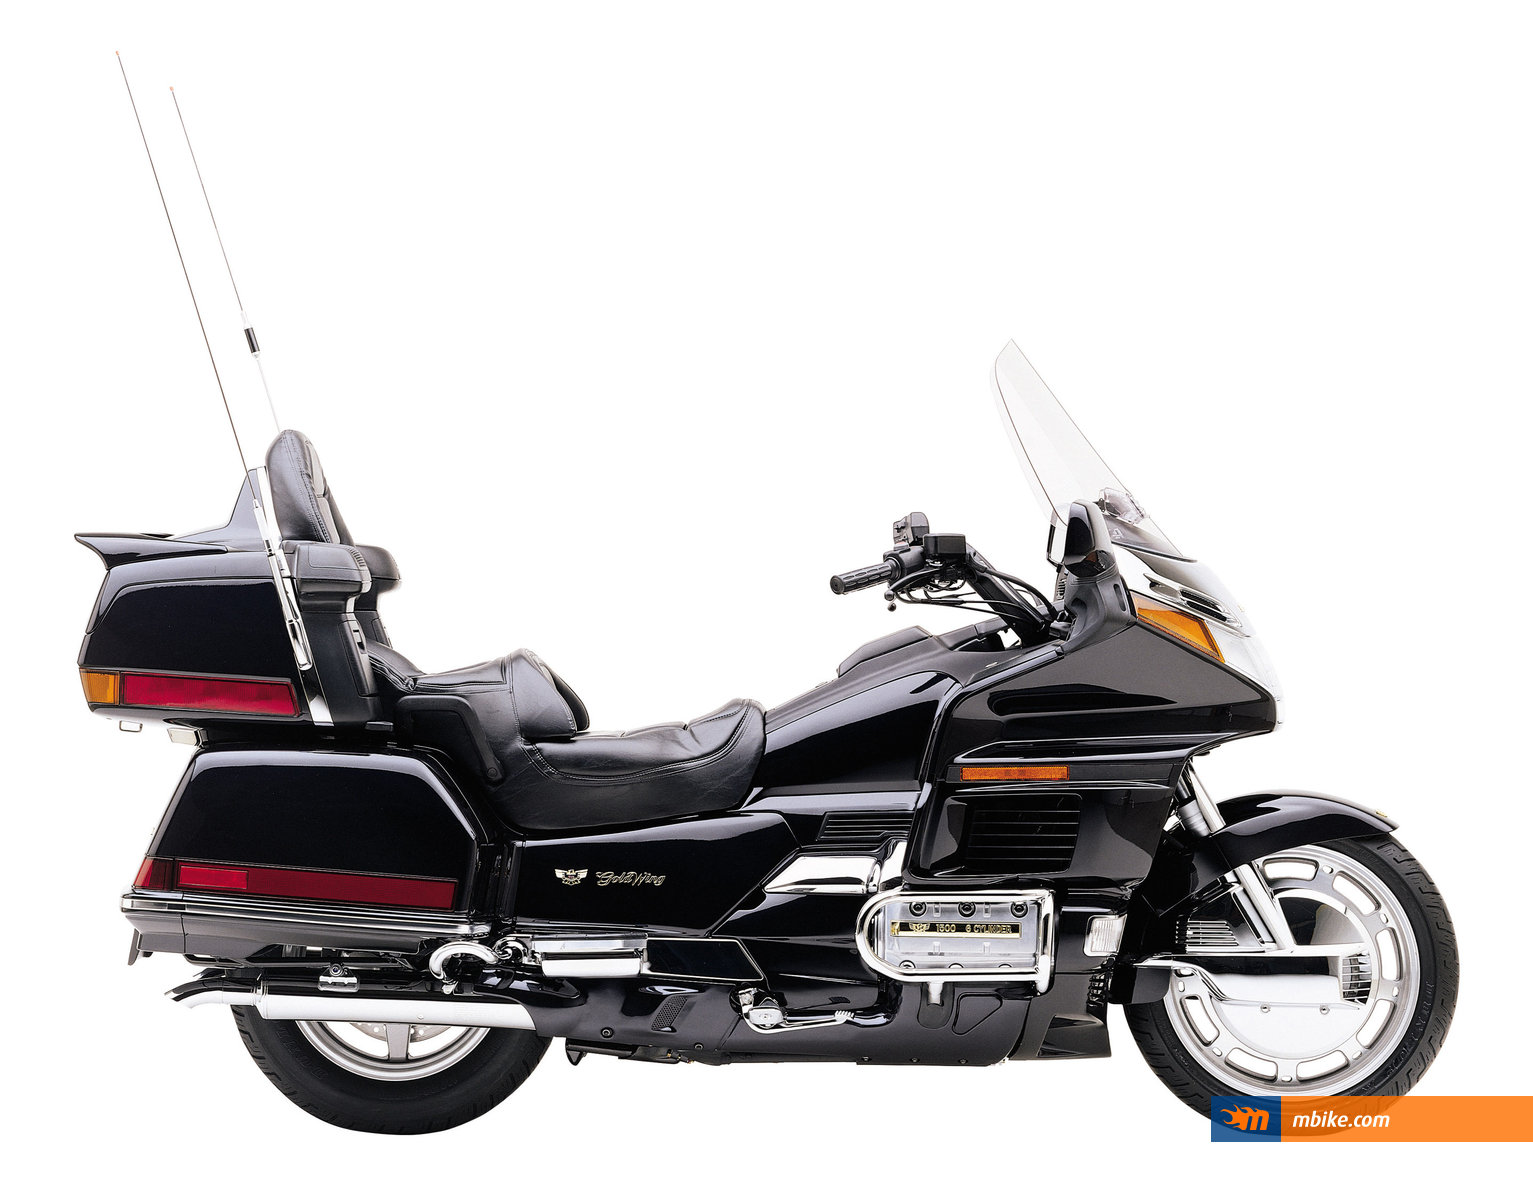 1997 Honda GL 1500 SE Gold Wing Wallpaper - Mbike.com